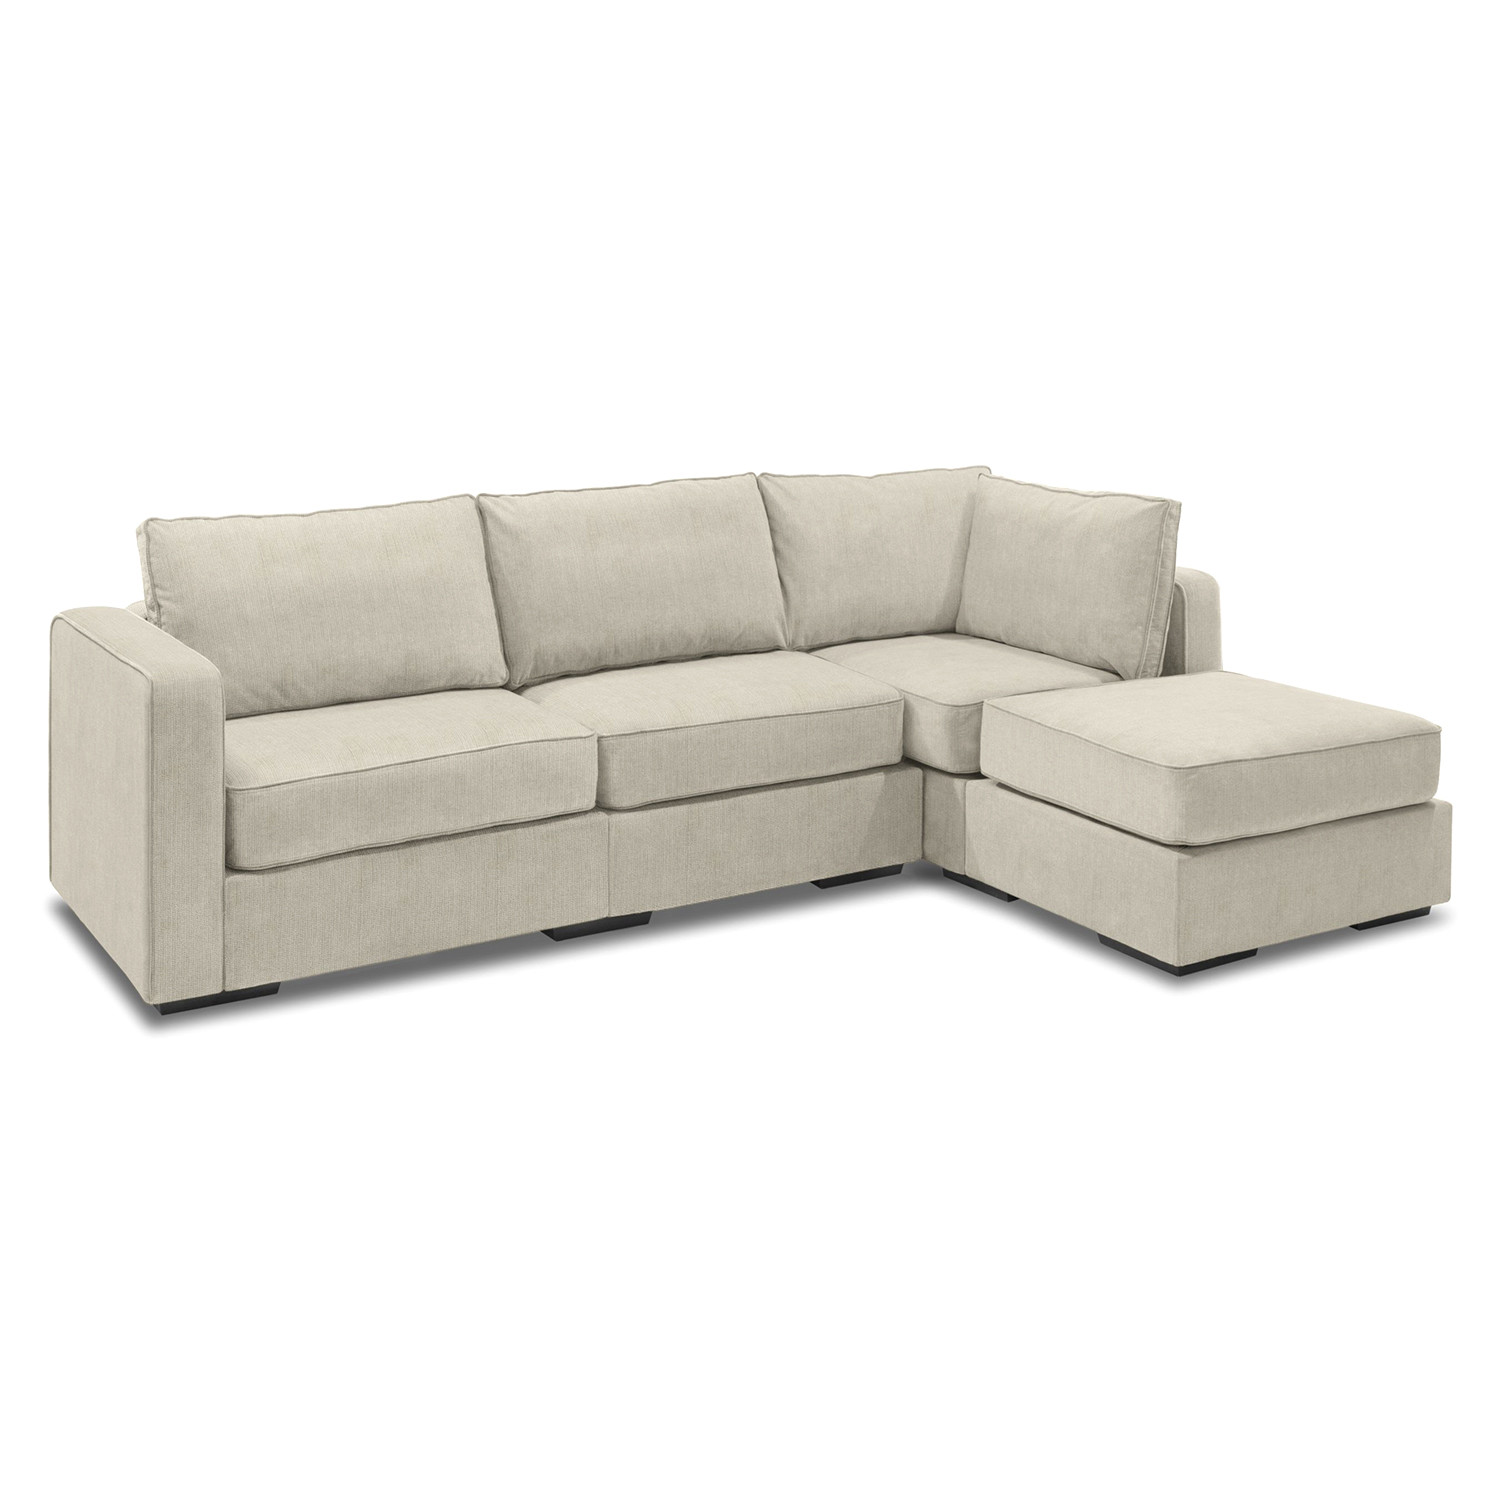 Stuccu: Best Deals on lovesac prices. Up To 70% offBest Offers· Compare Prices· Special Discounts· Lowest PricesService catalog: Lowest Prices, Final Sales, Top Deals.